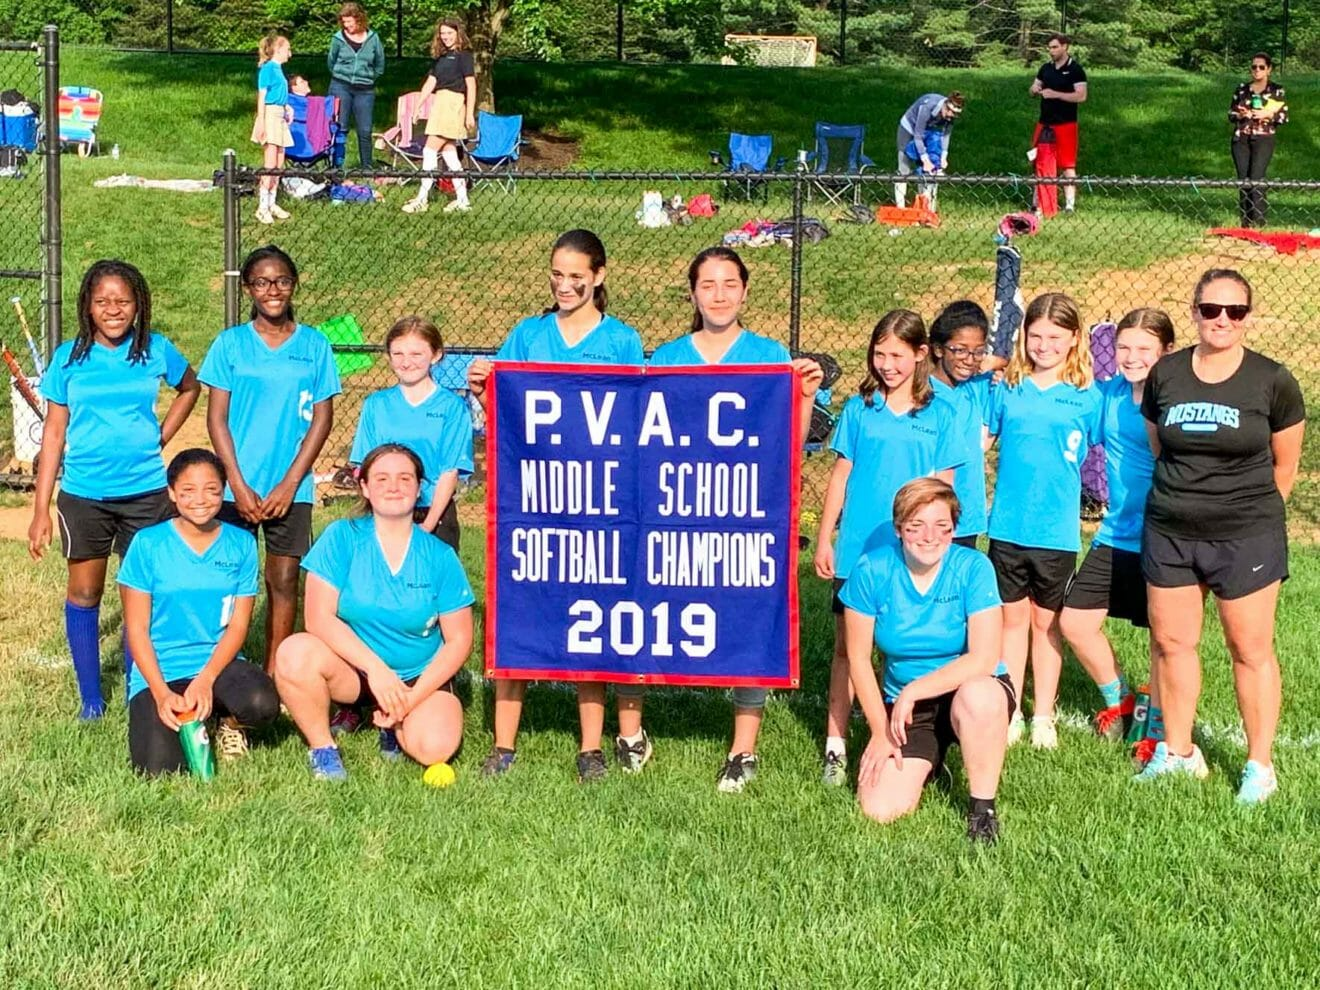 Middle school softball team poses with PVAC Championship banner